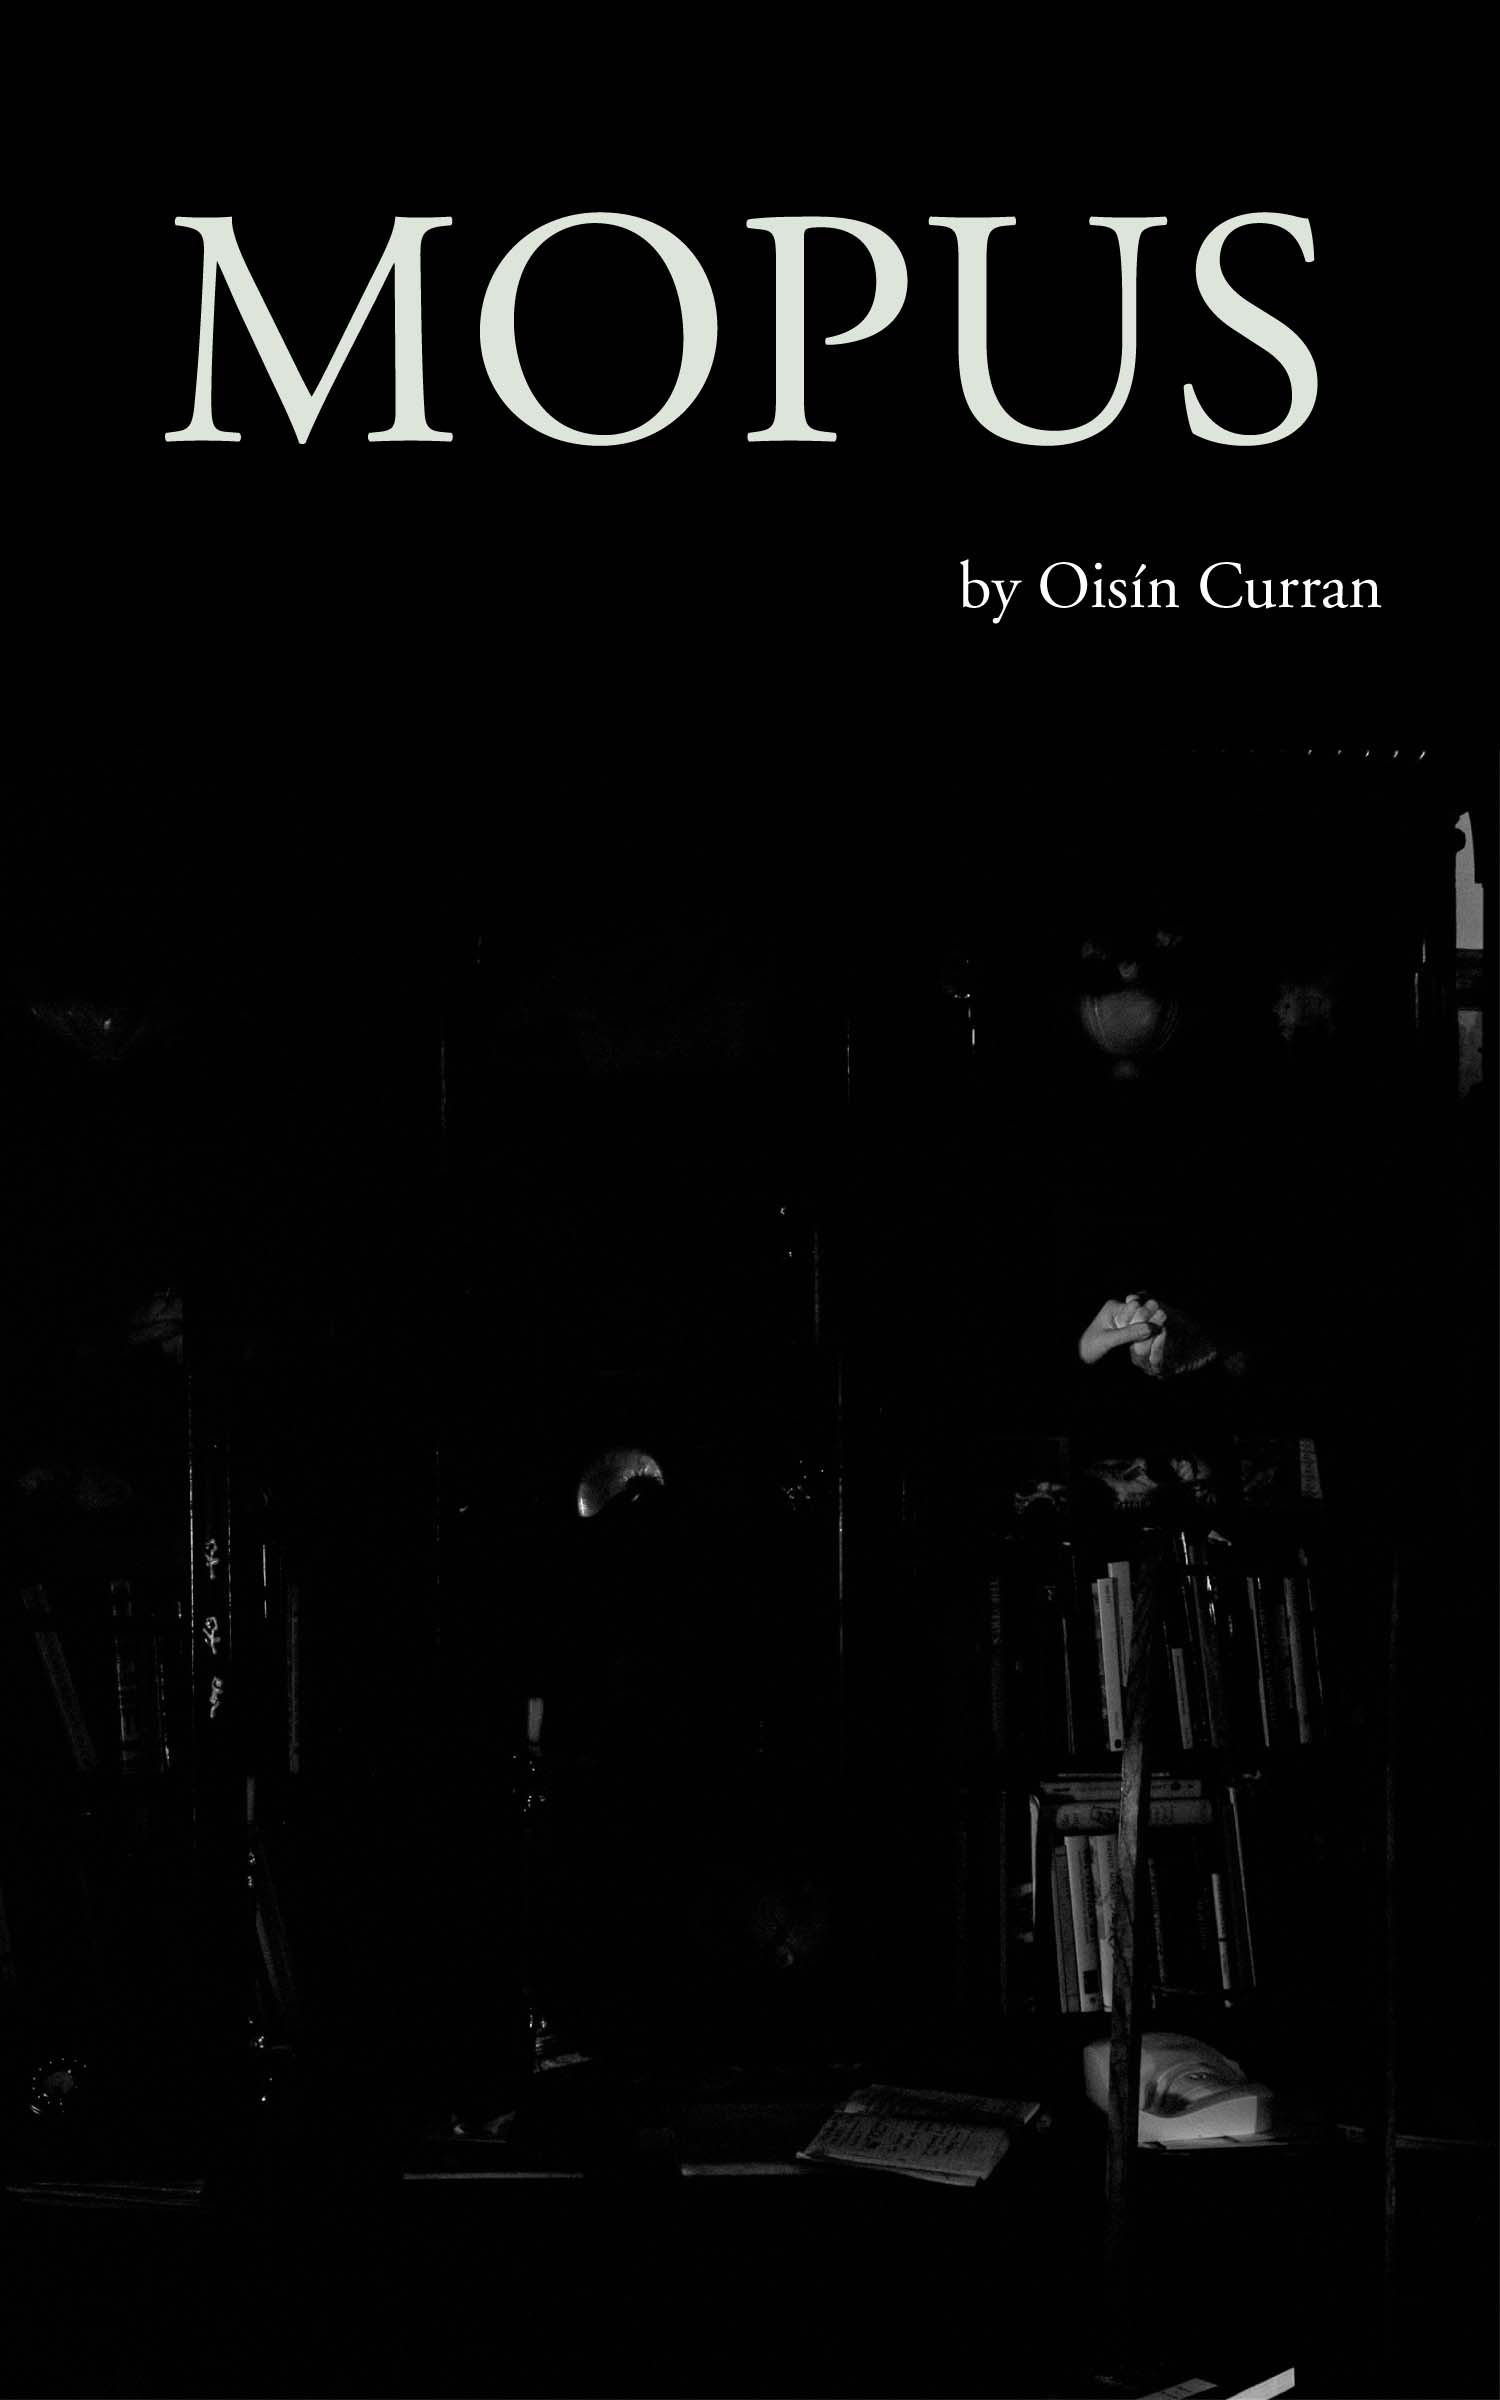 Mopus: A Novel  by Oisín CurranIntroduction by Steve Katz